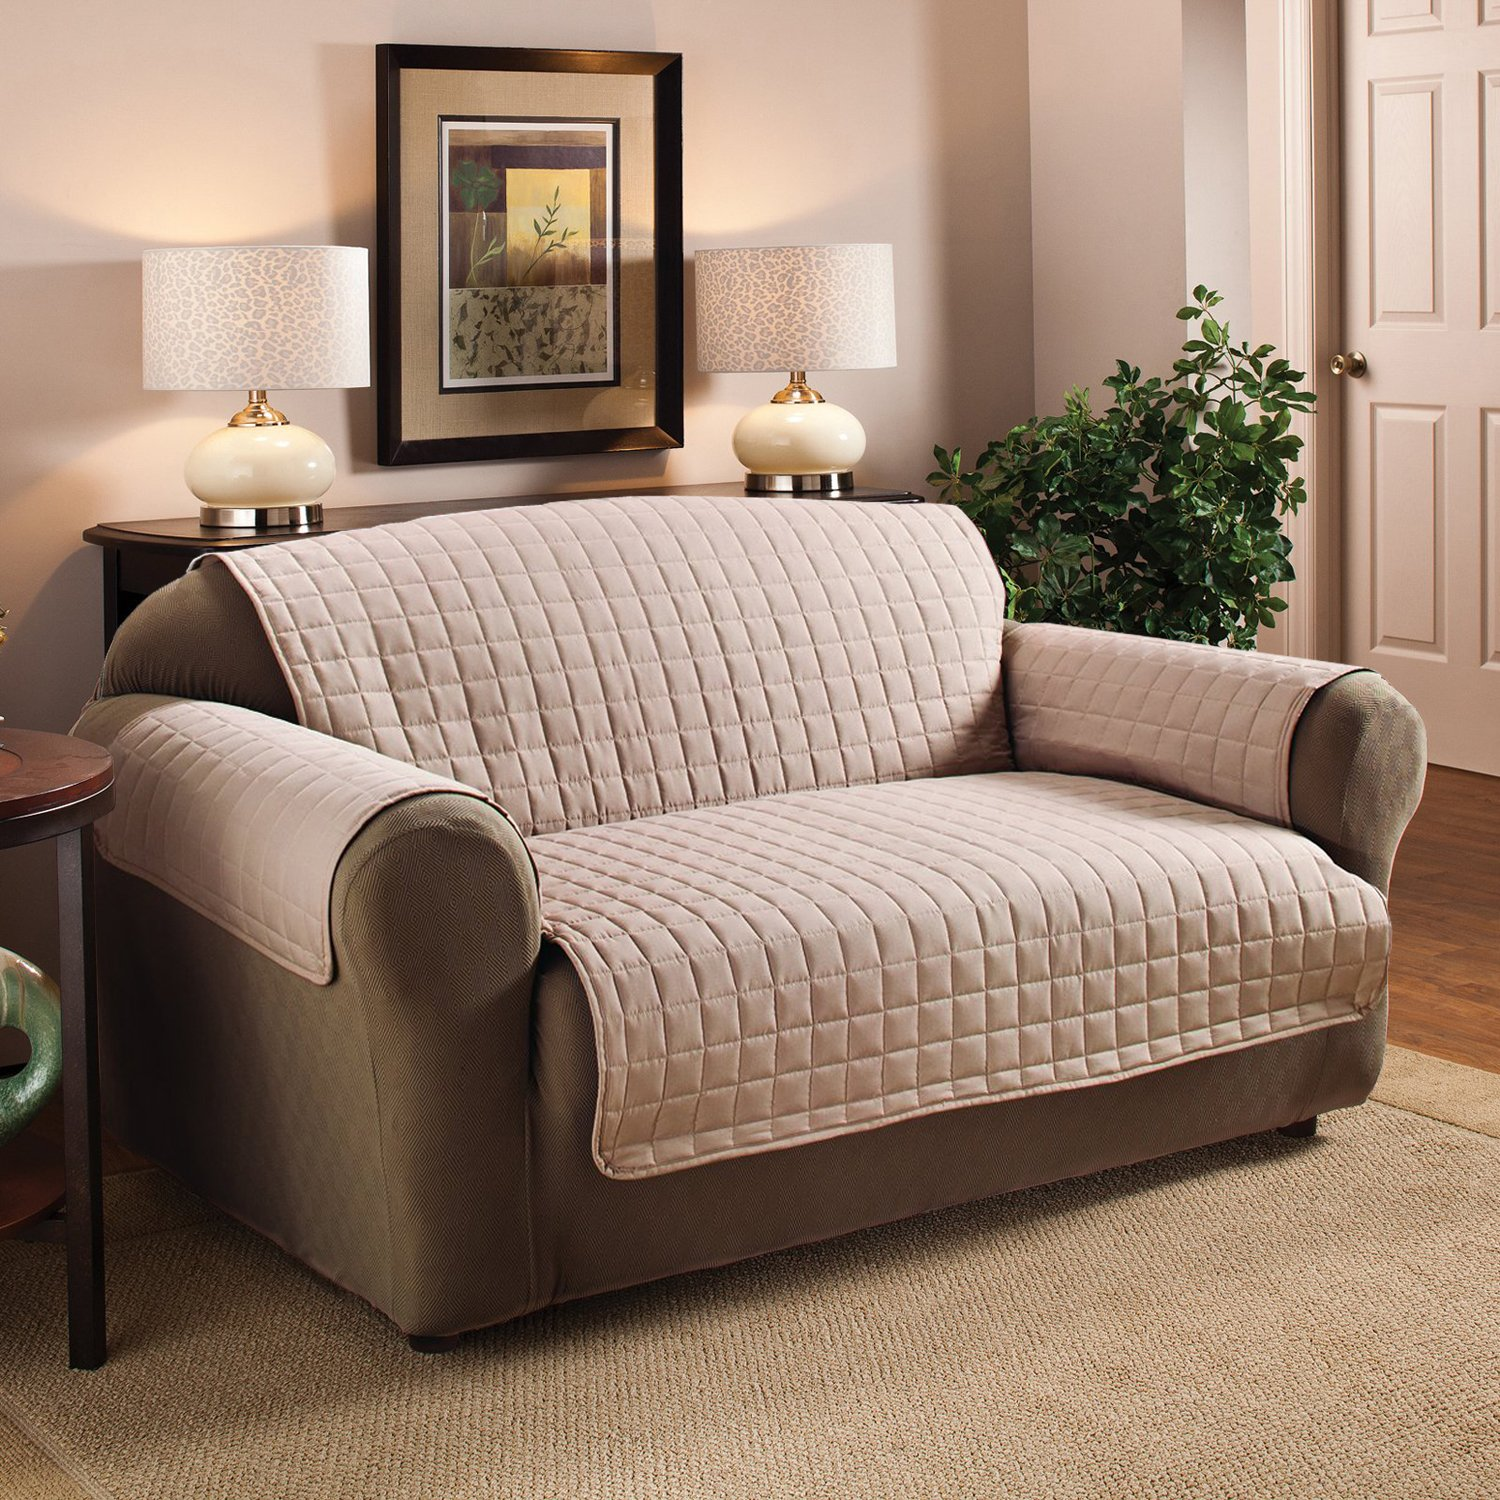 Sweet Home Collection Luxury Furniture Protector with Quilted Design Preserves Sofa/Loveseat/Chair, Sofa/Tan